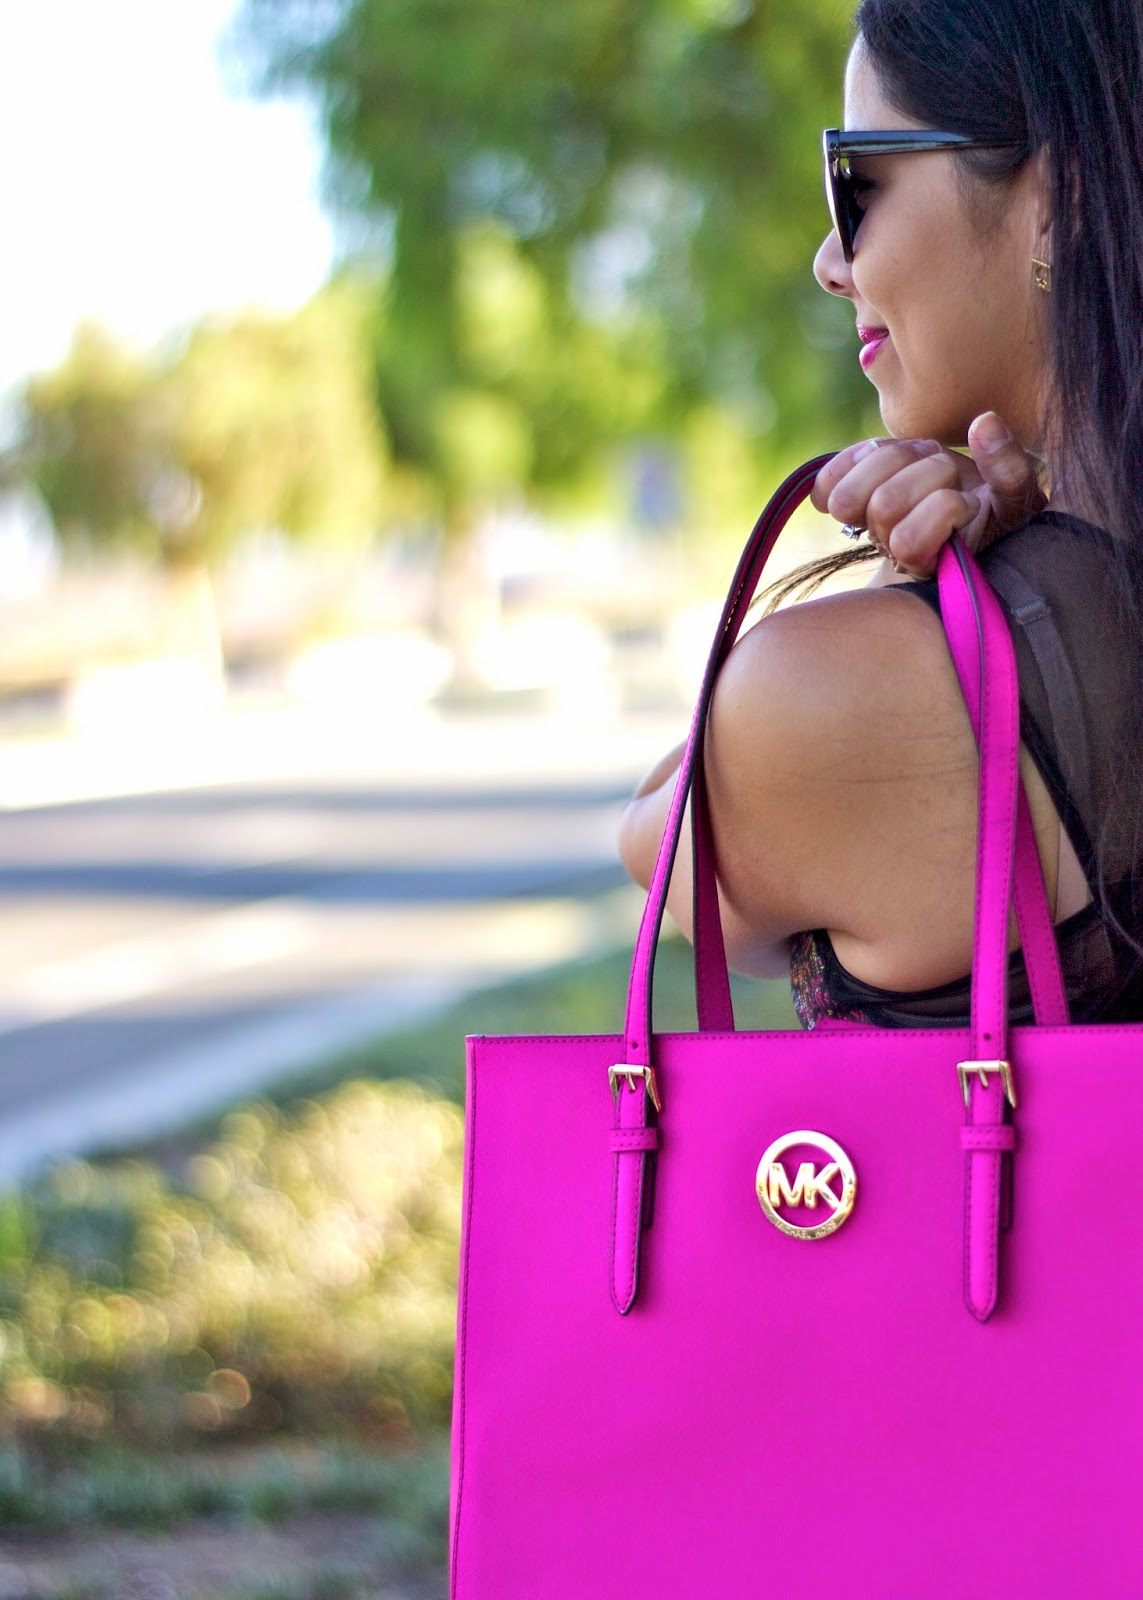 hot pink michael kors purse, pink michael kors handbag, michael kors handbag raffle, magenta michael kors purse